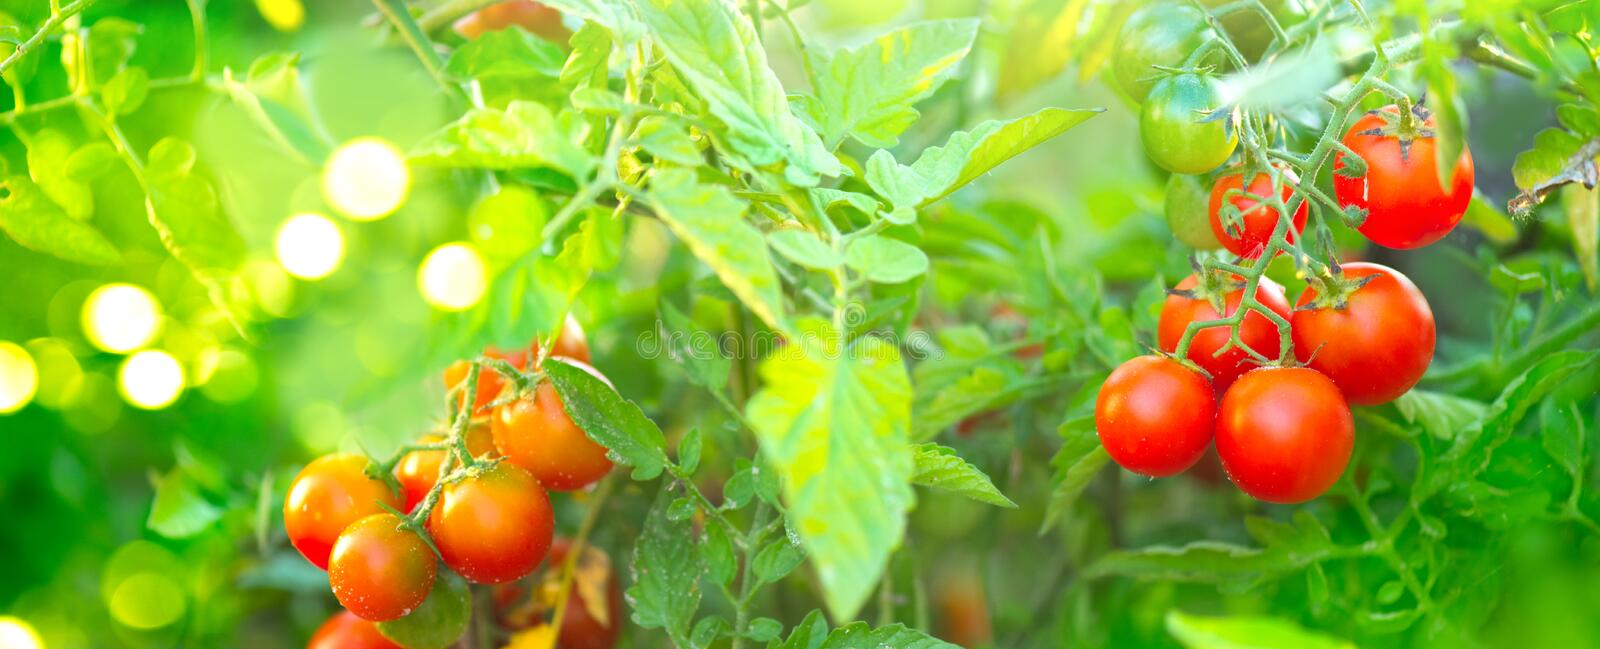 Tomato. Fresh and ripe organic Cherry tomatoes growing in a garden. Tomato hanging on a branch. Agriculture stock image